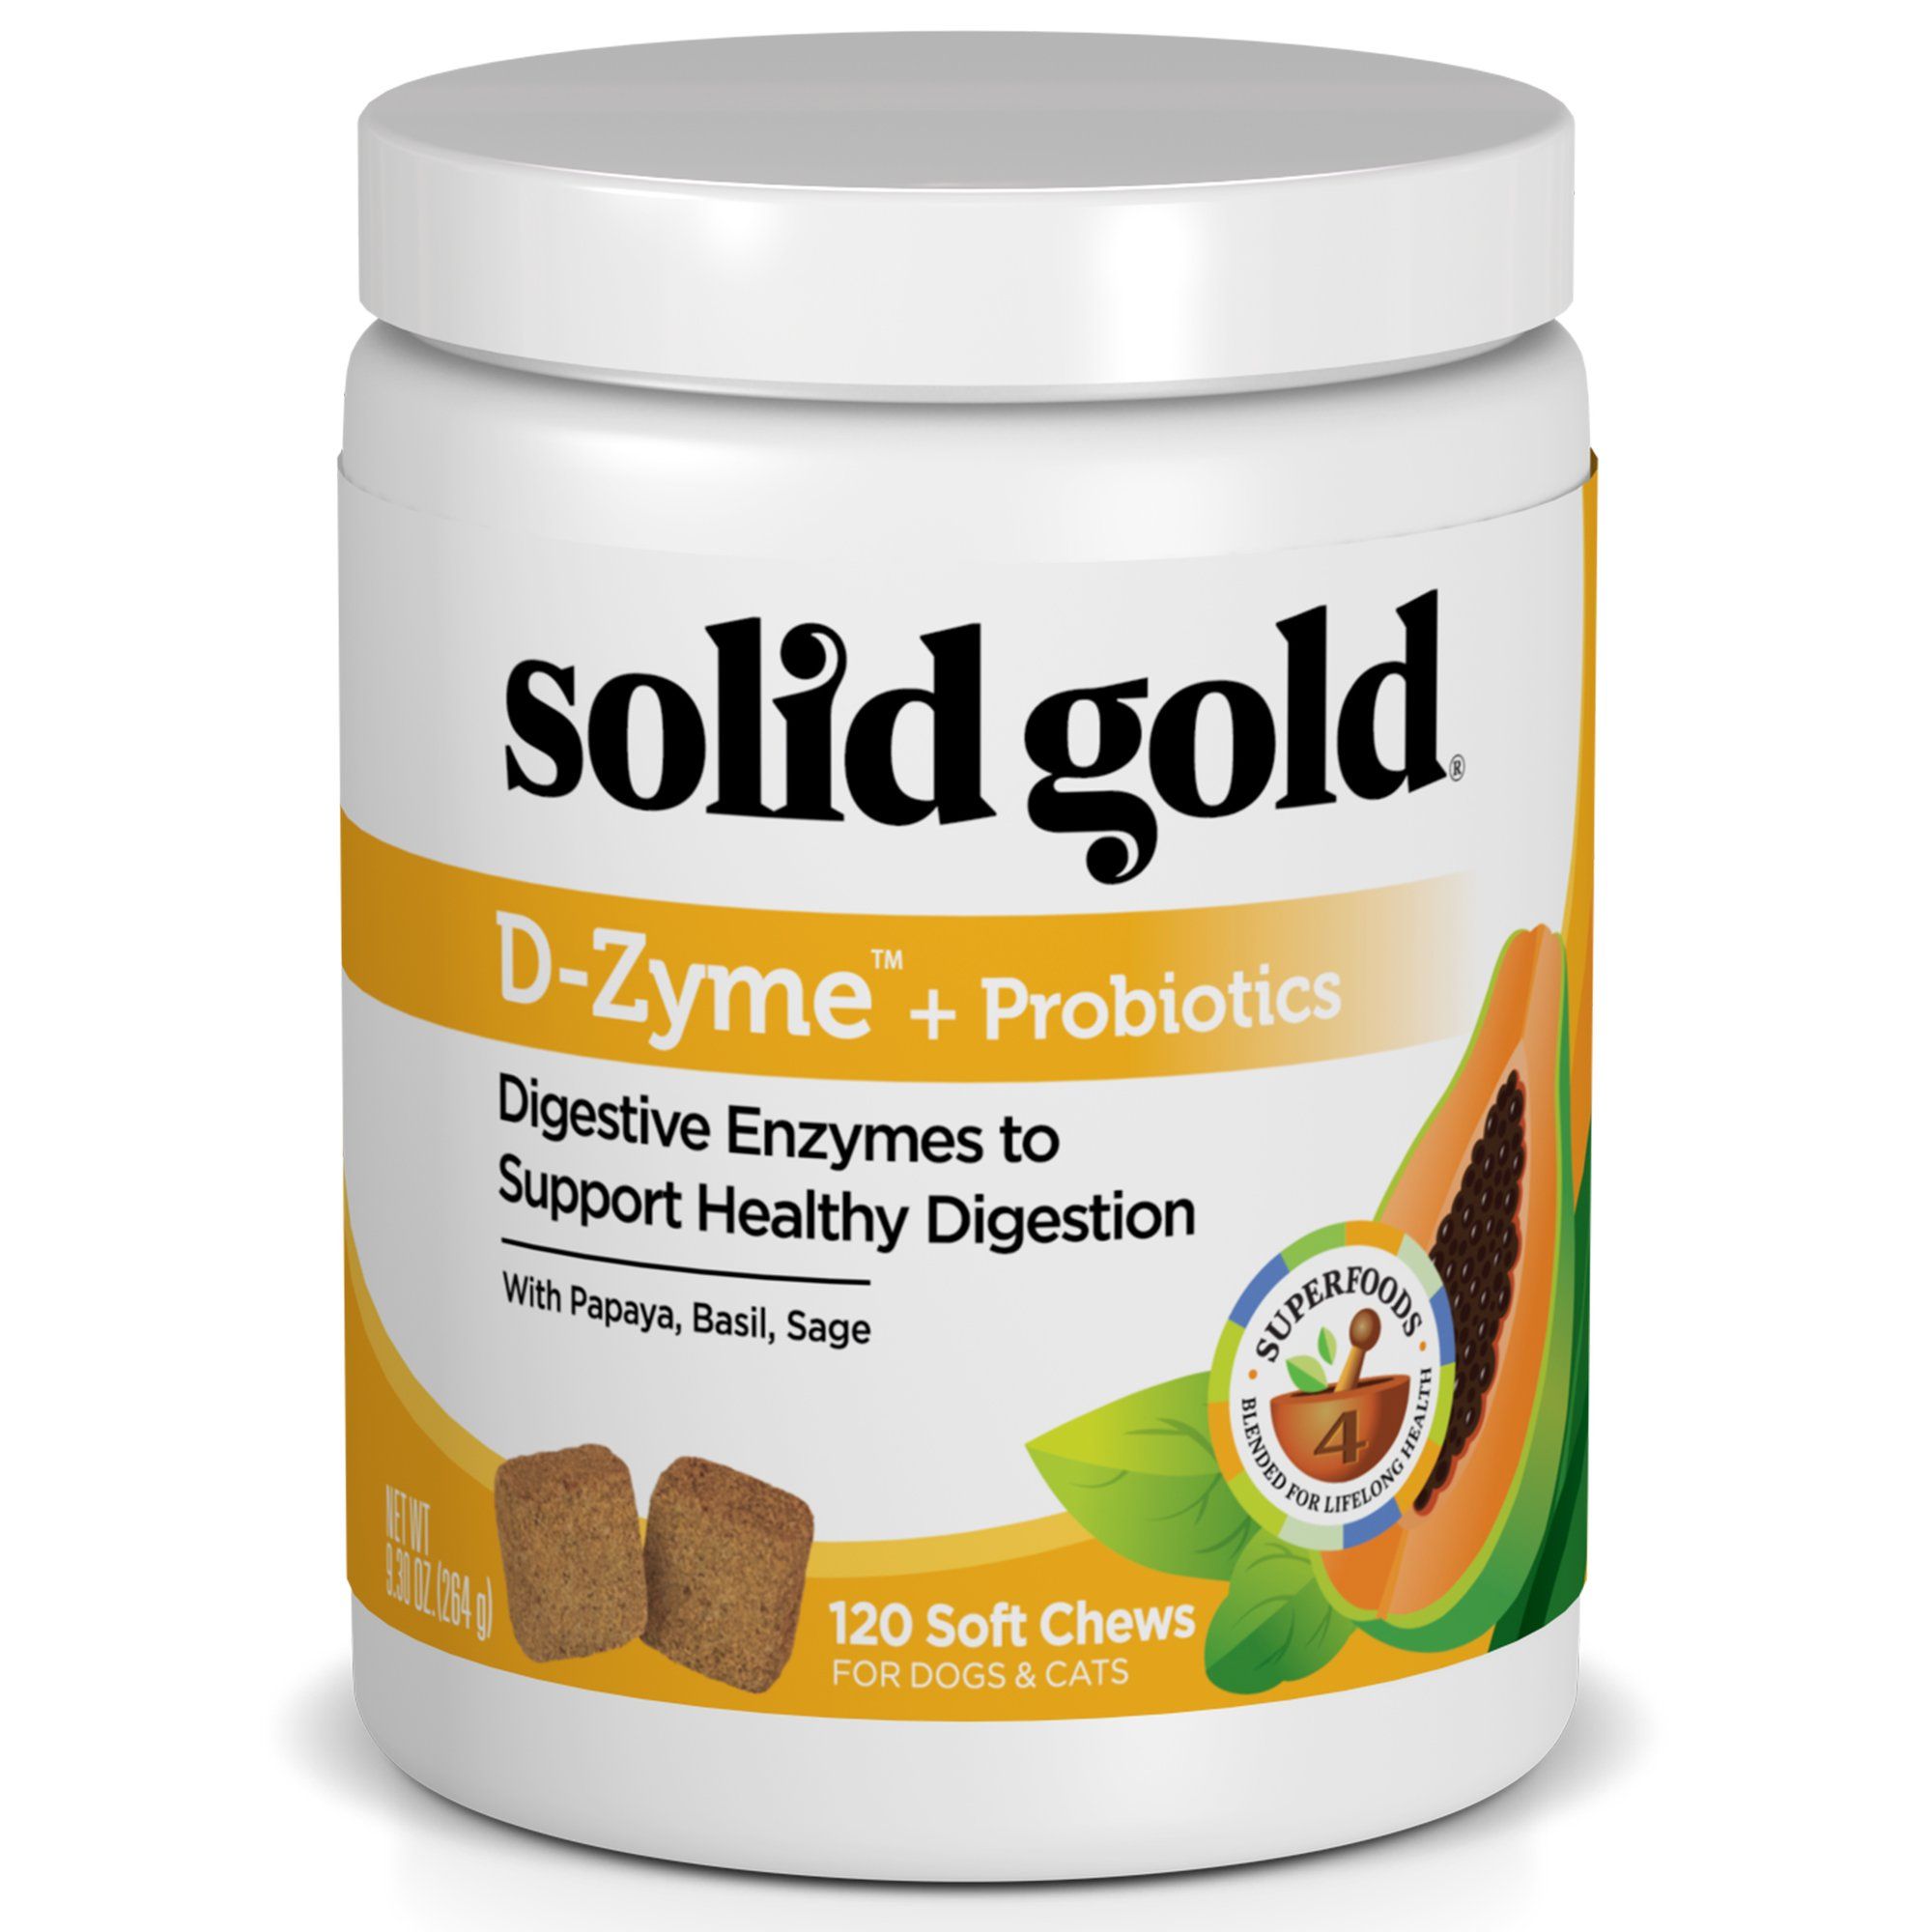 Solid Gold Digestive Enzyme Supplement for Healthy Digestion in Dogs & Cats; D-Zyme, Natural, Grain-Free Supplement Chews (120ct.) with Probiotics & Superfoods